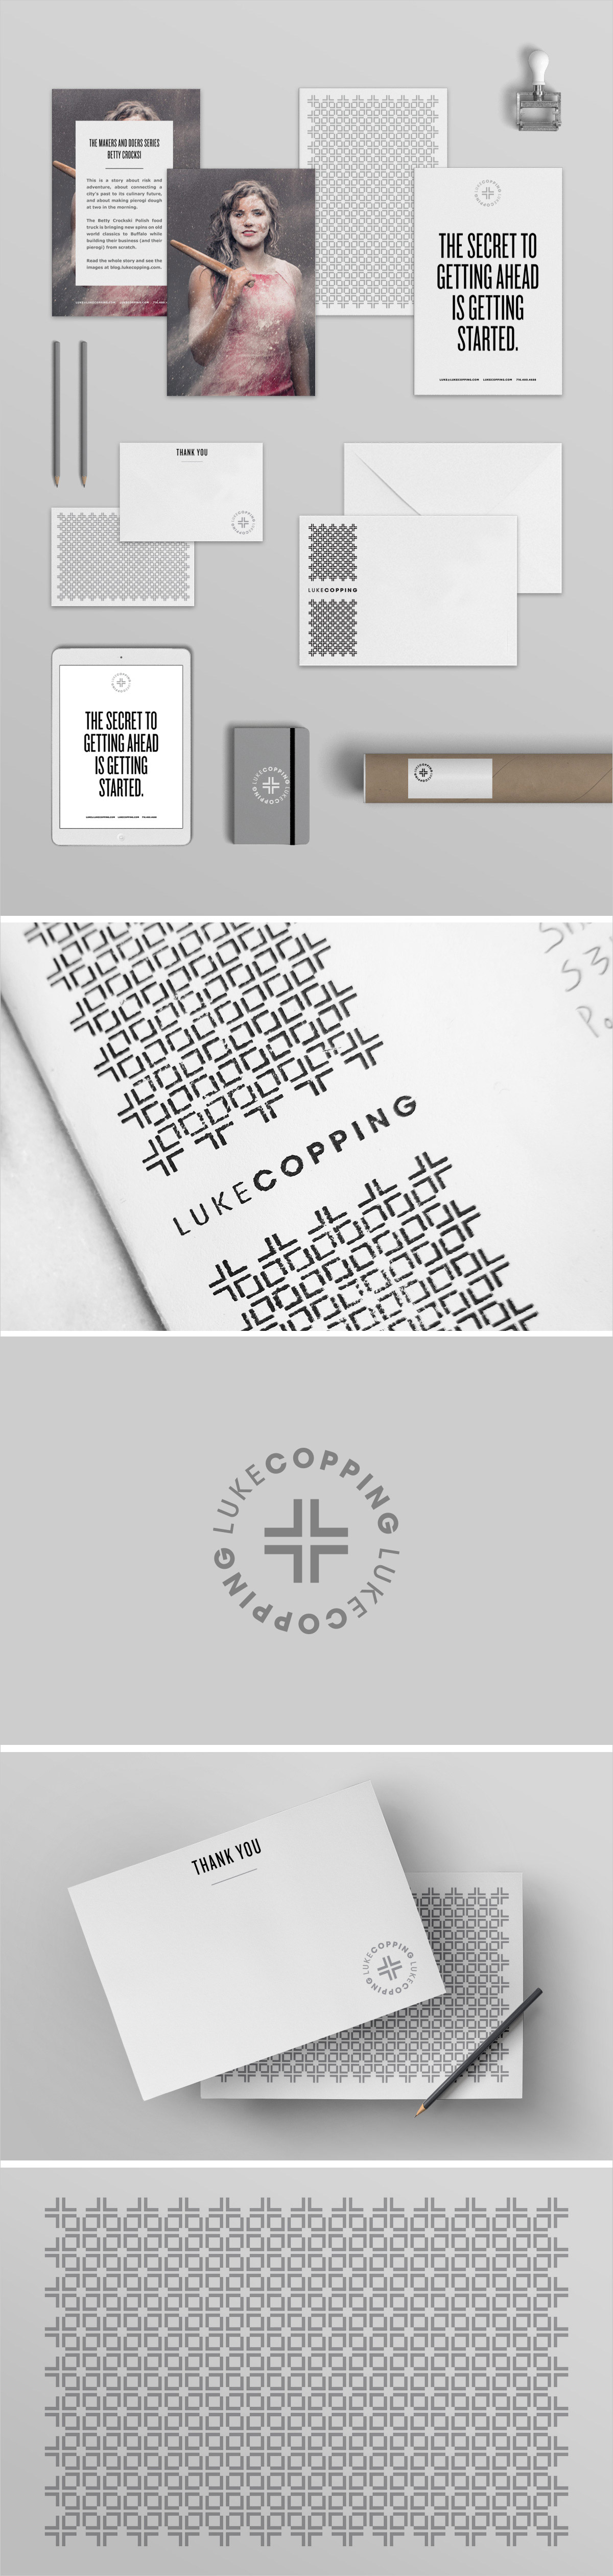 Branch | Luke Copping Promos, Thank You Cards and Stamps